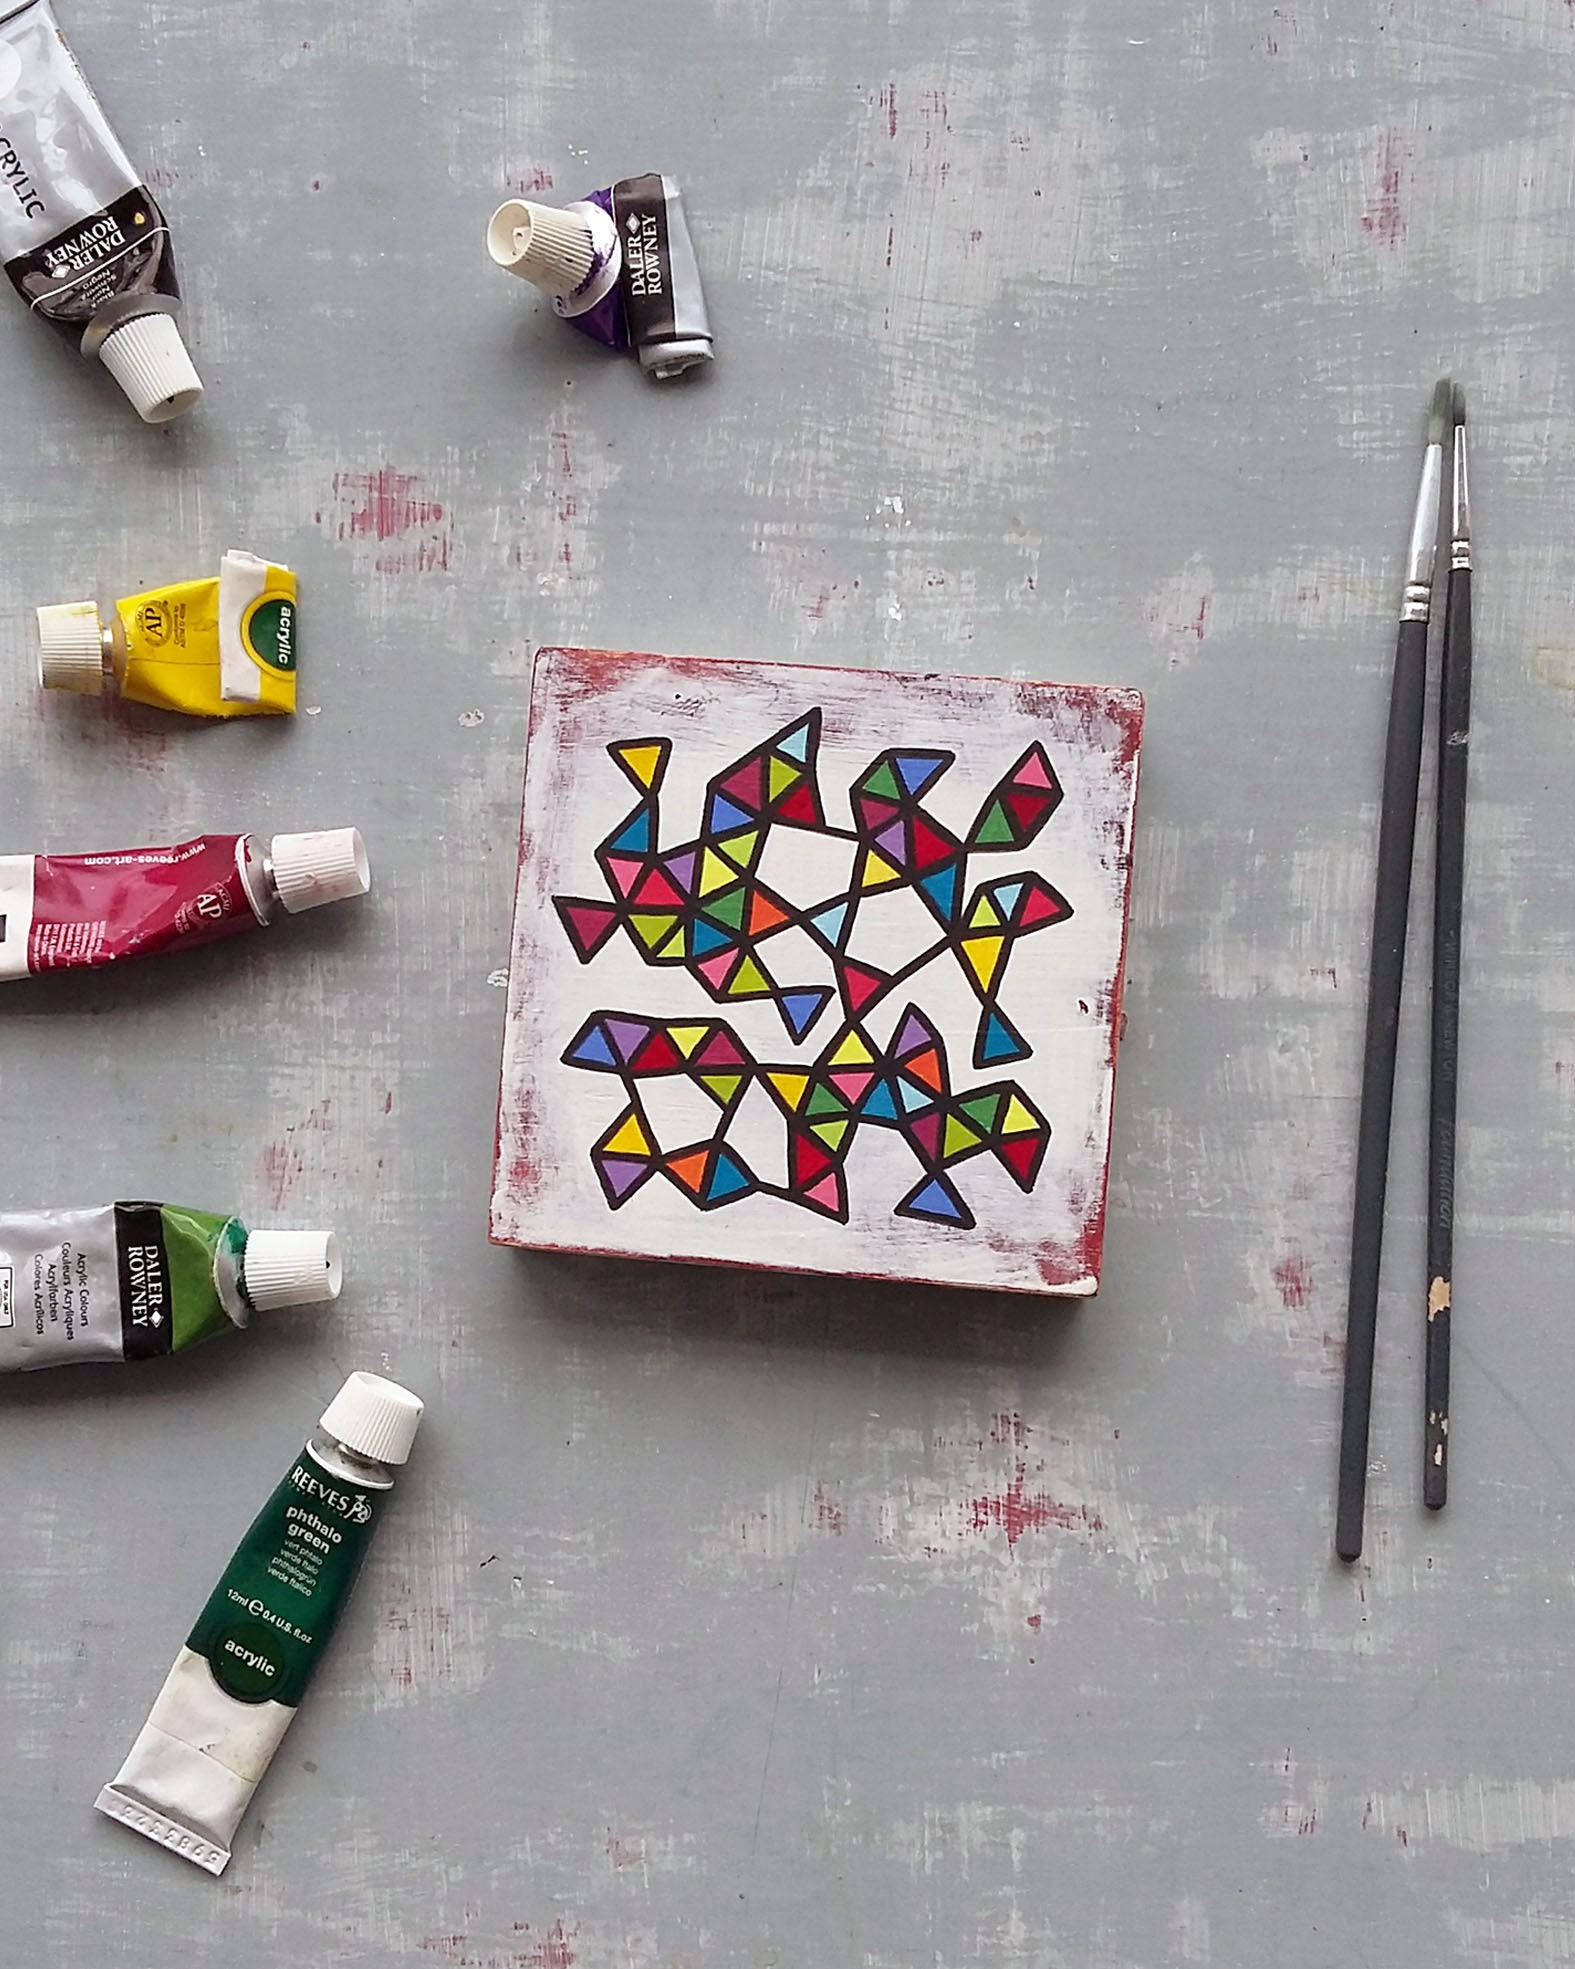 Slice_003, small abstract geometric painting - product image